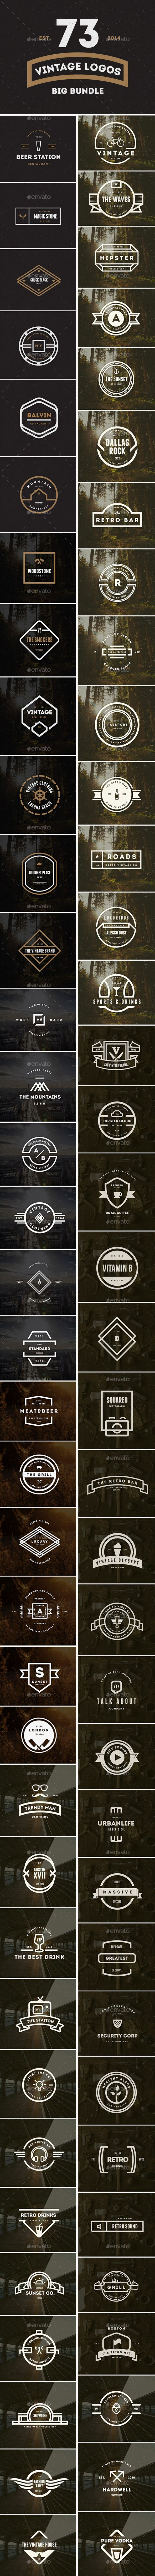 73 Vintage Labels & Badges Logos Bundle Template PSD | Buy and Download: http://graphicriver.net/item/73-vintage-labels-badges-logos-bundle/9624640?WT.oss_phrase=&WT.oss_rank=7&WT.z_author=designdistrictmx&WT.ac=search_thumb&ref=ksioks